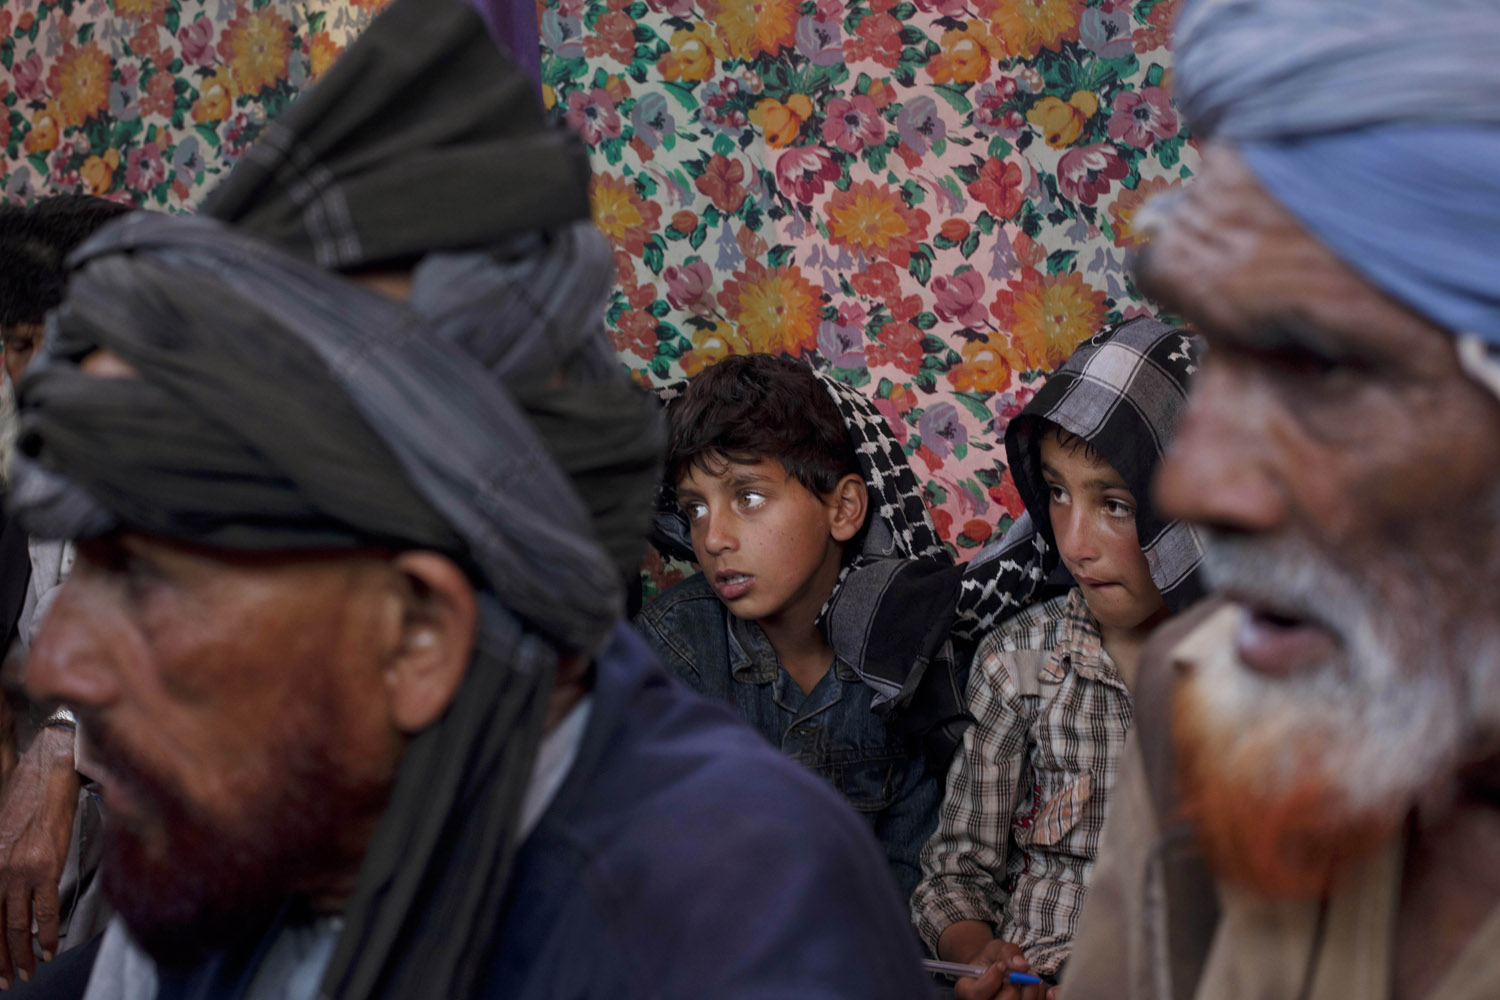 May 31, 2013. Kashmiri Bakarwal nomads listen to a sermon delivered by a cleric during a marriage ceremony at a temporary camp on the outskirts of Srinagar, India.